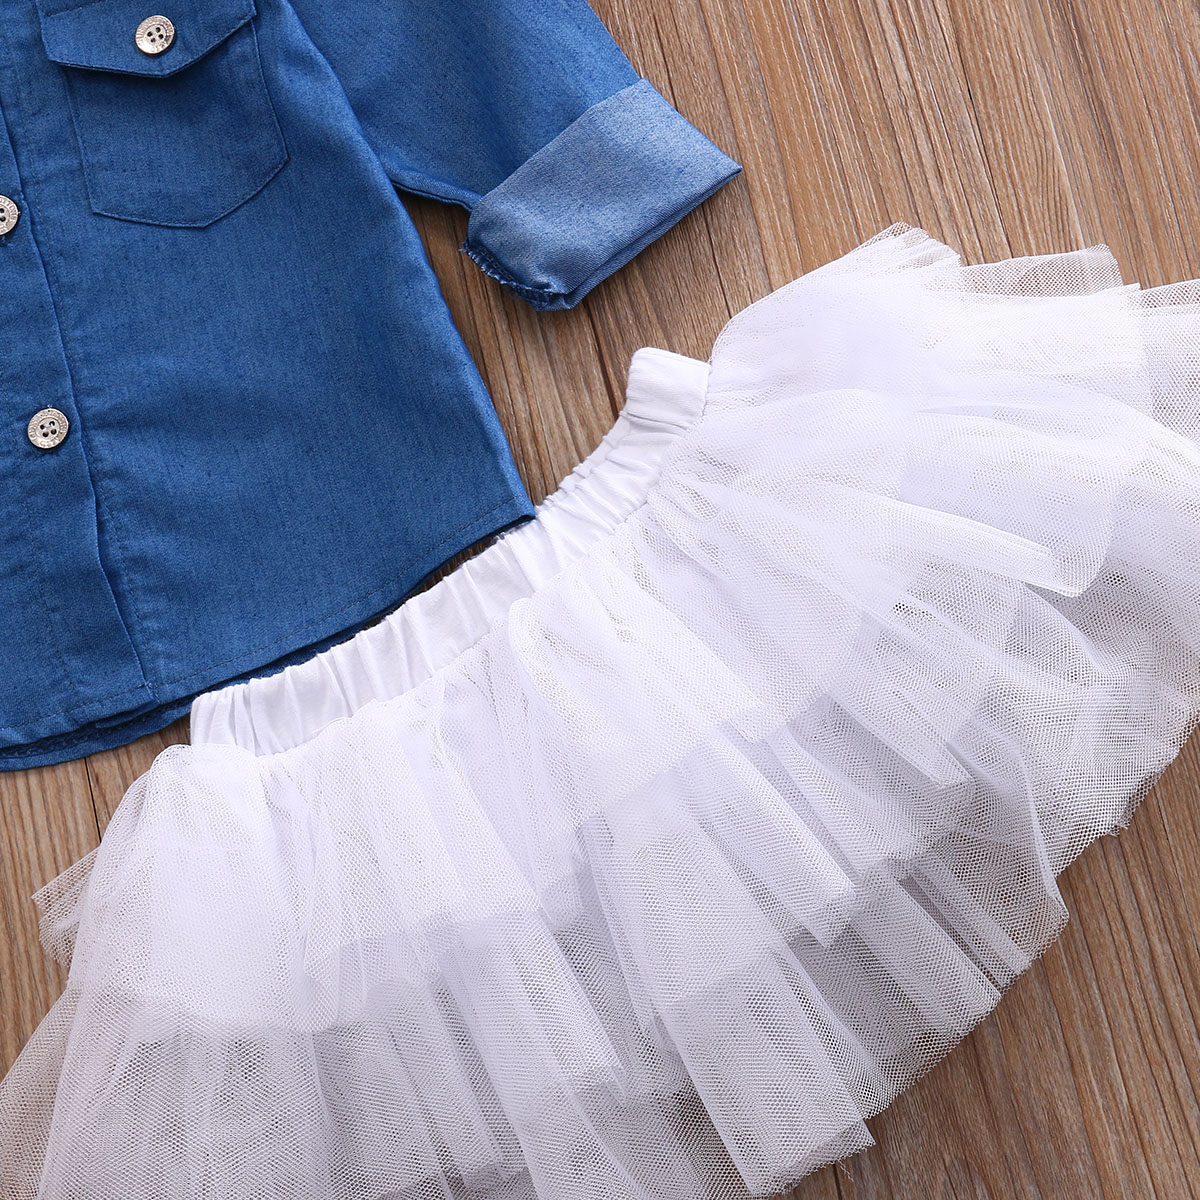 Girls-Tops-Shirt-Tutu-Skirts-Ruffles-Cute-Party-3pcs-Outfits-Clothing-Set-Toddler-Kids-Baby-Girl-Clothes-Set-Denim-4